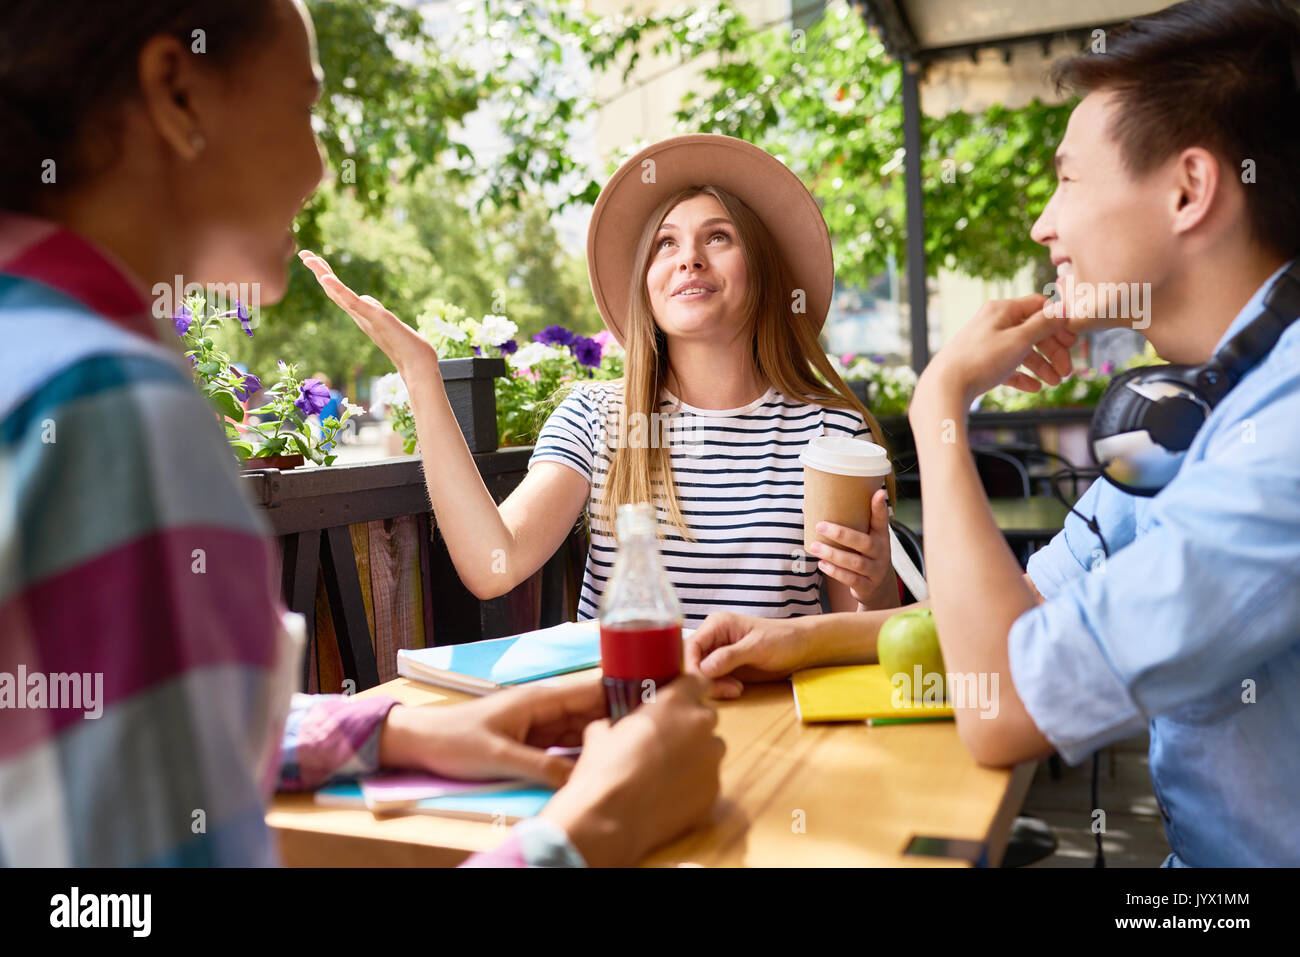 Young People Chatting in Cafe - Stock Image